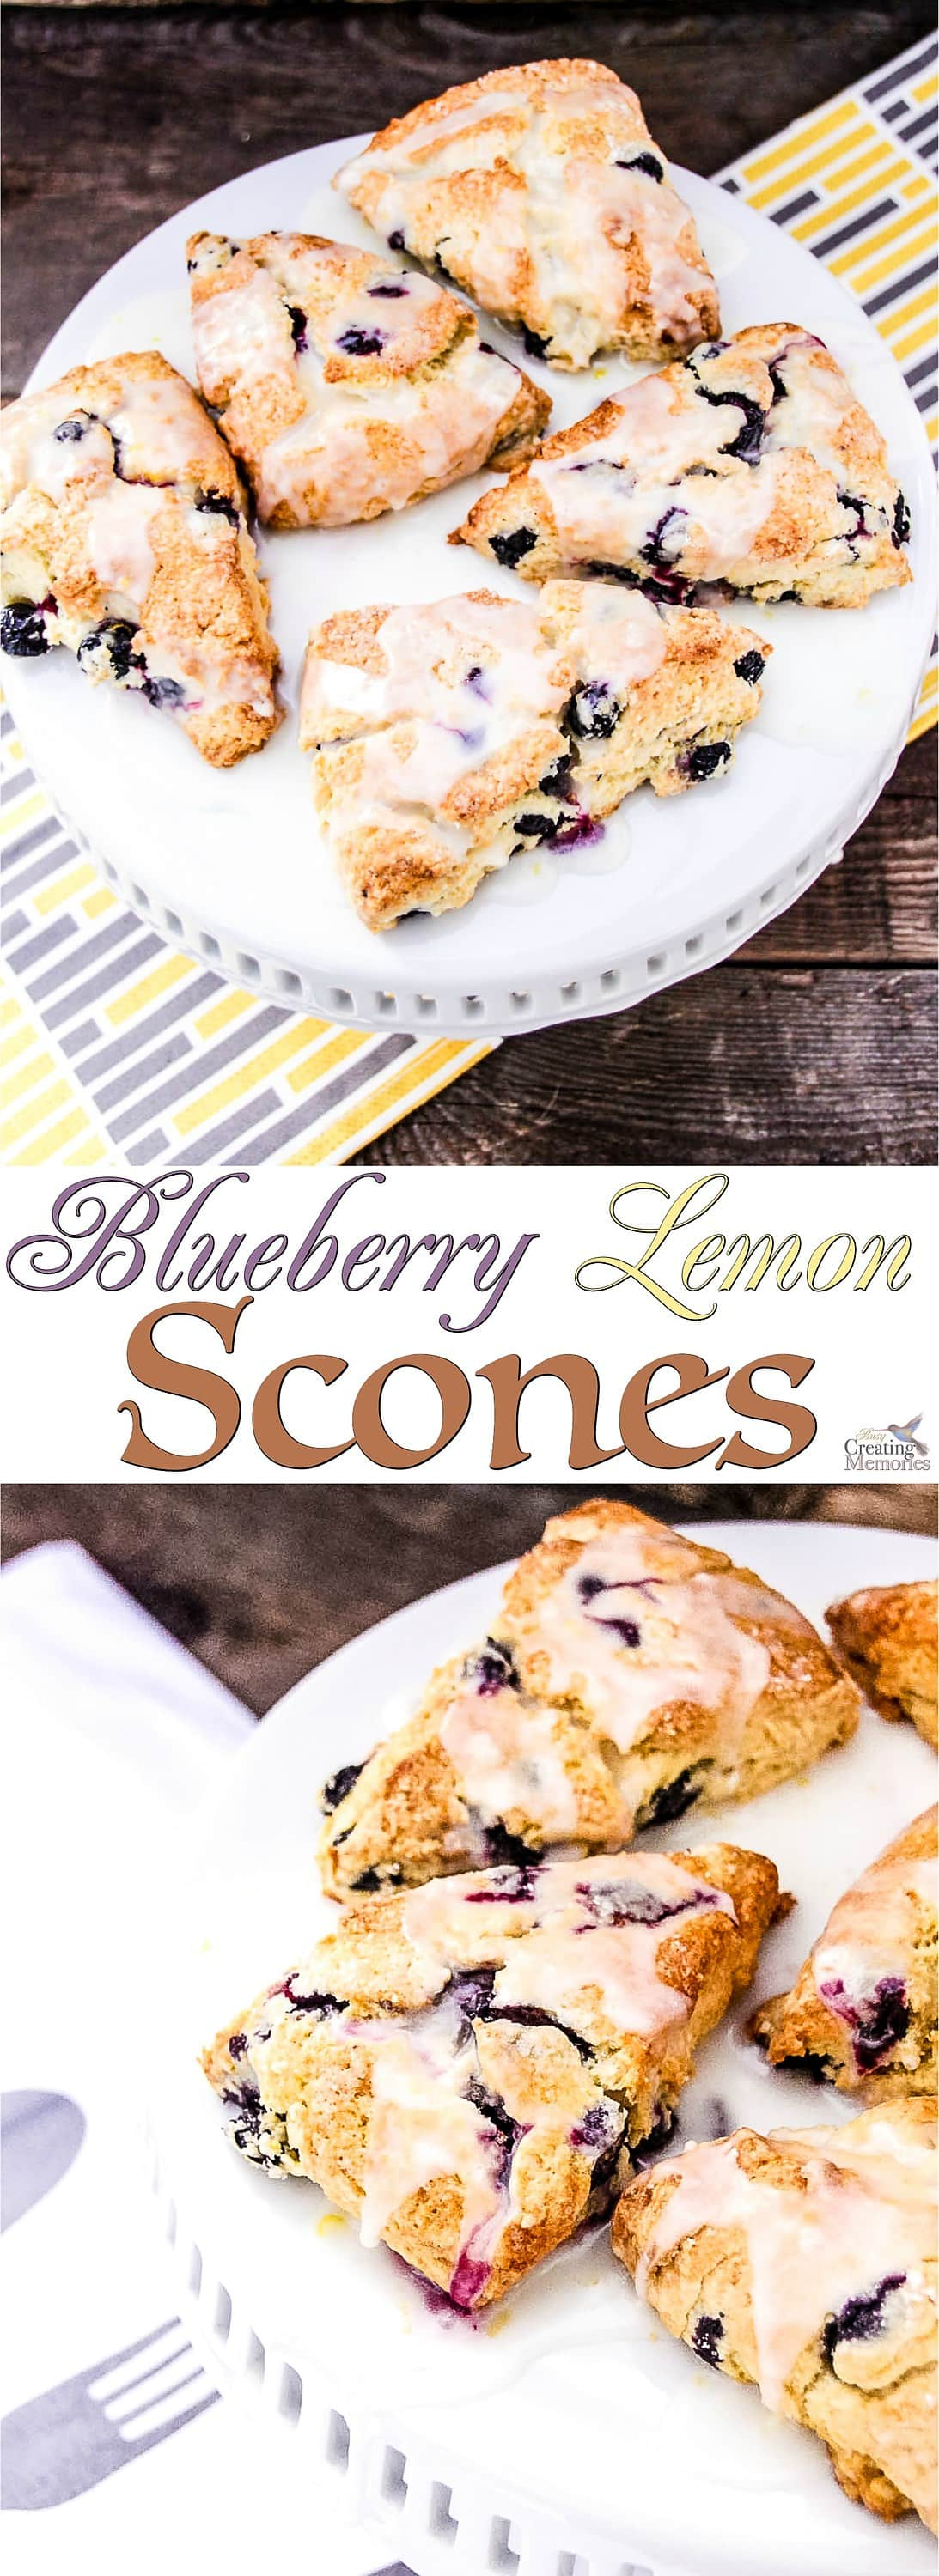 Experience perfection in a bite! Try this easy to follow Blueberry Lemon Scone Recipe! A perfect addition to brunch, afternoon tea party or book club party!